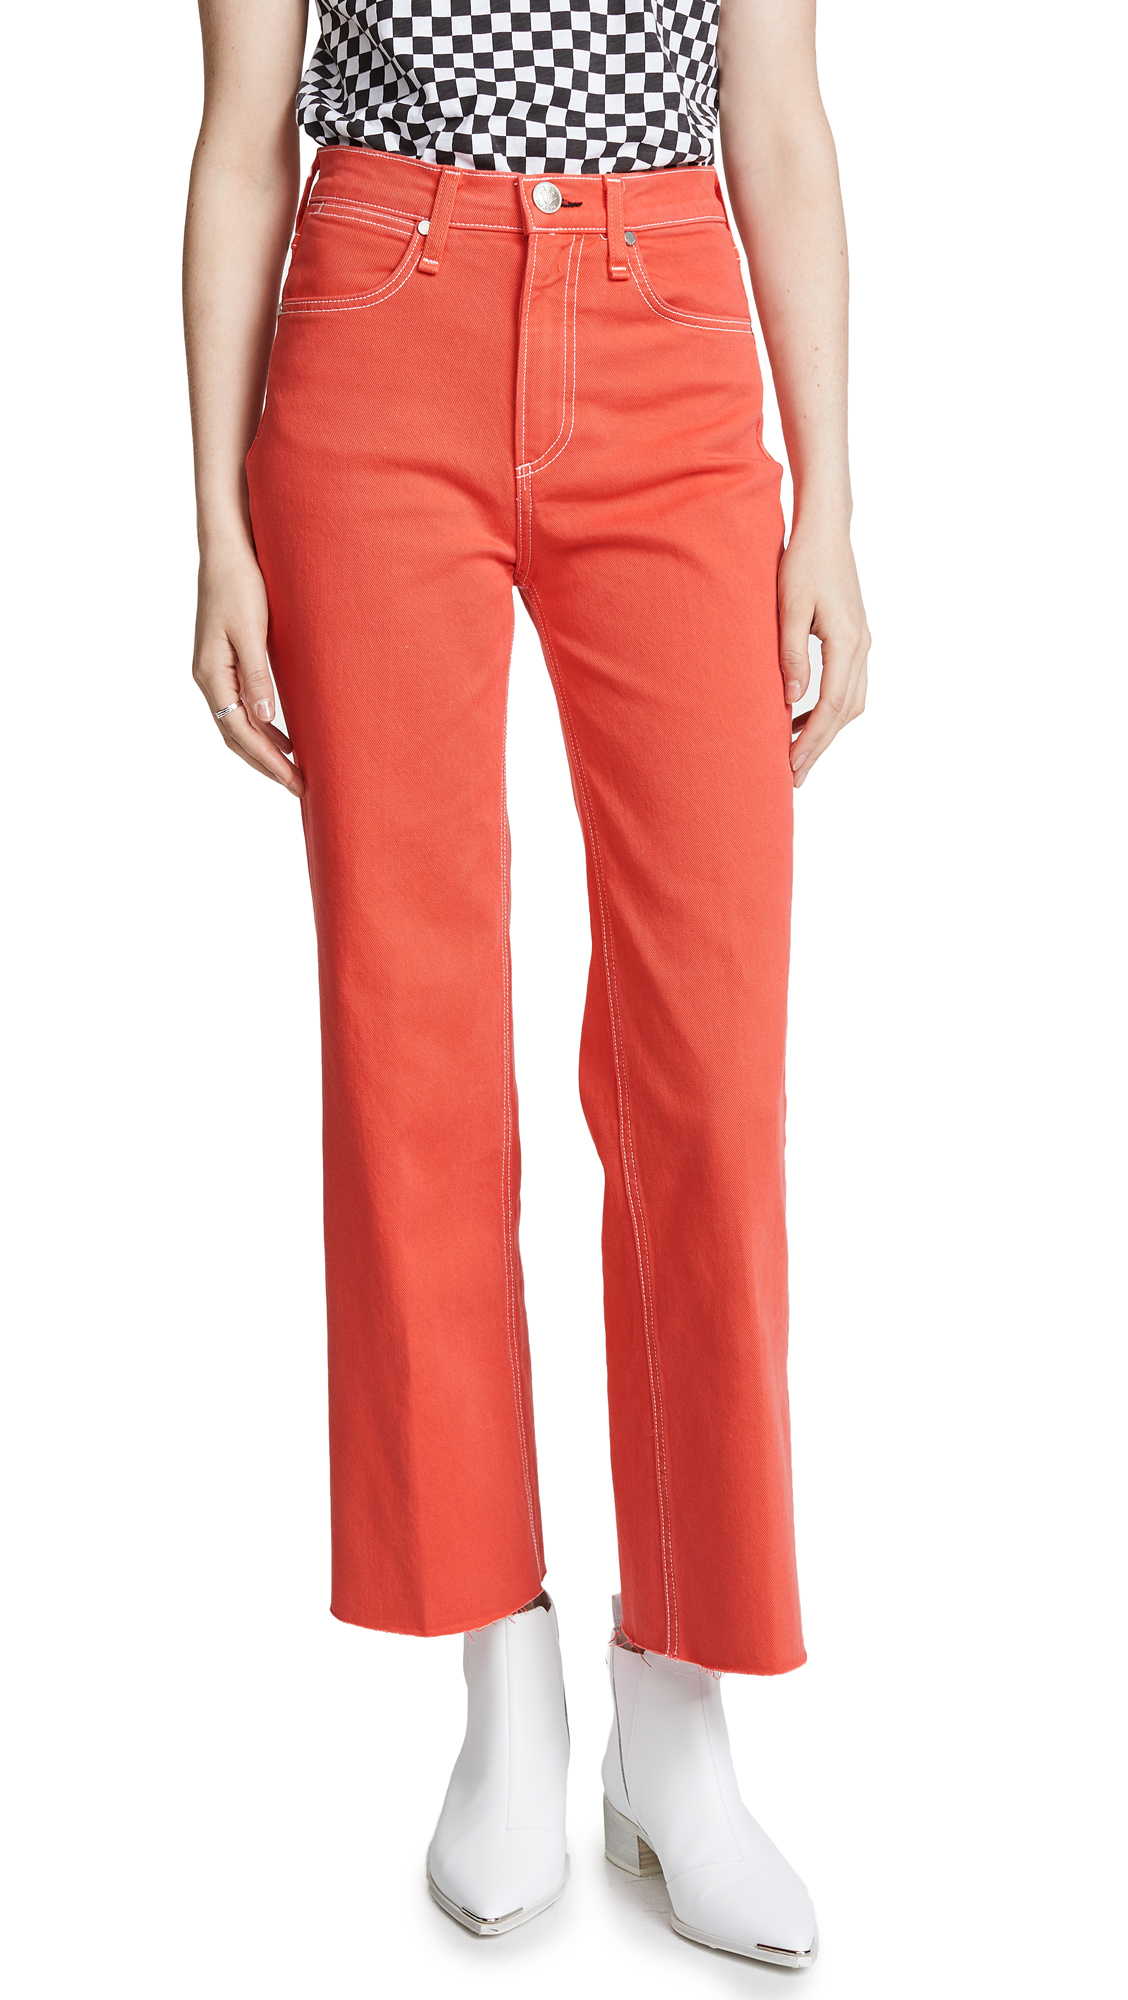 JUSTINE ANKLE TROUSER JEANS